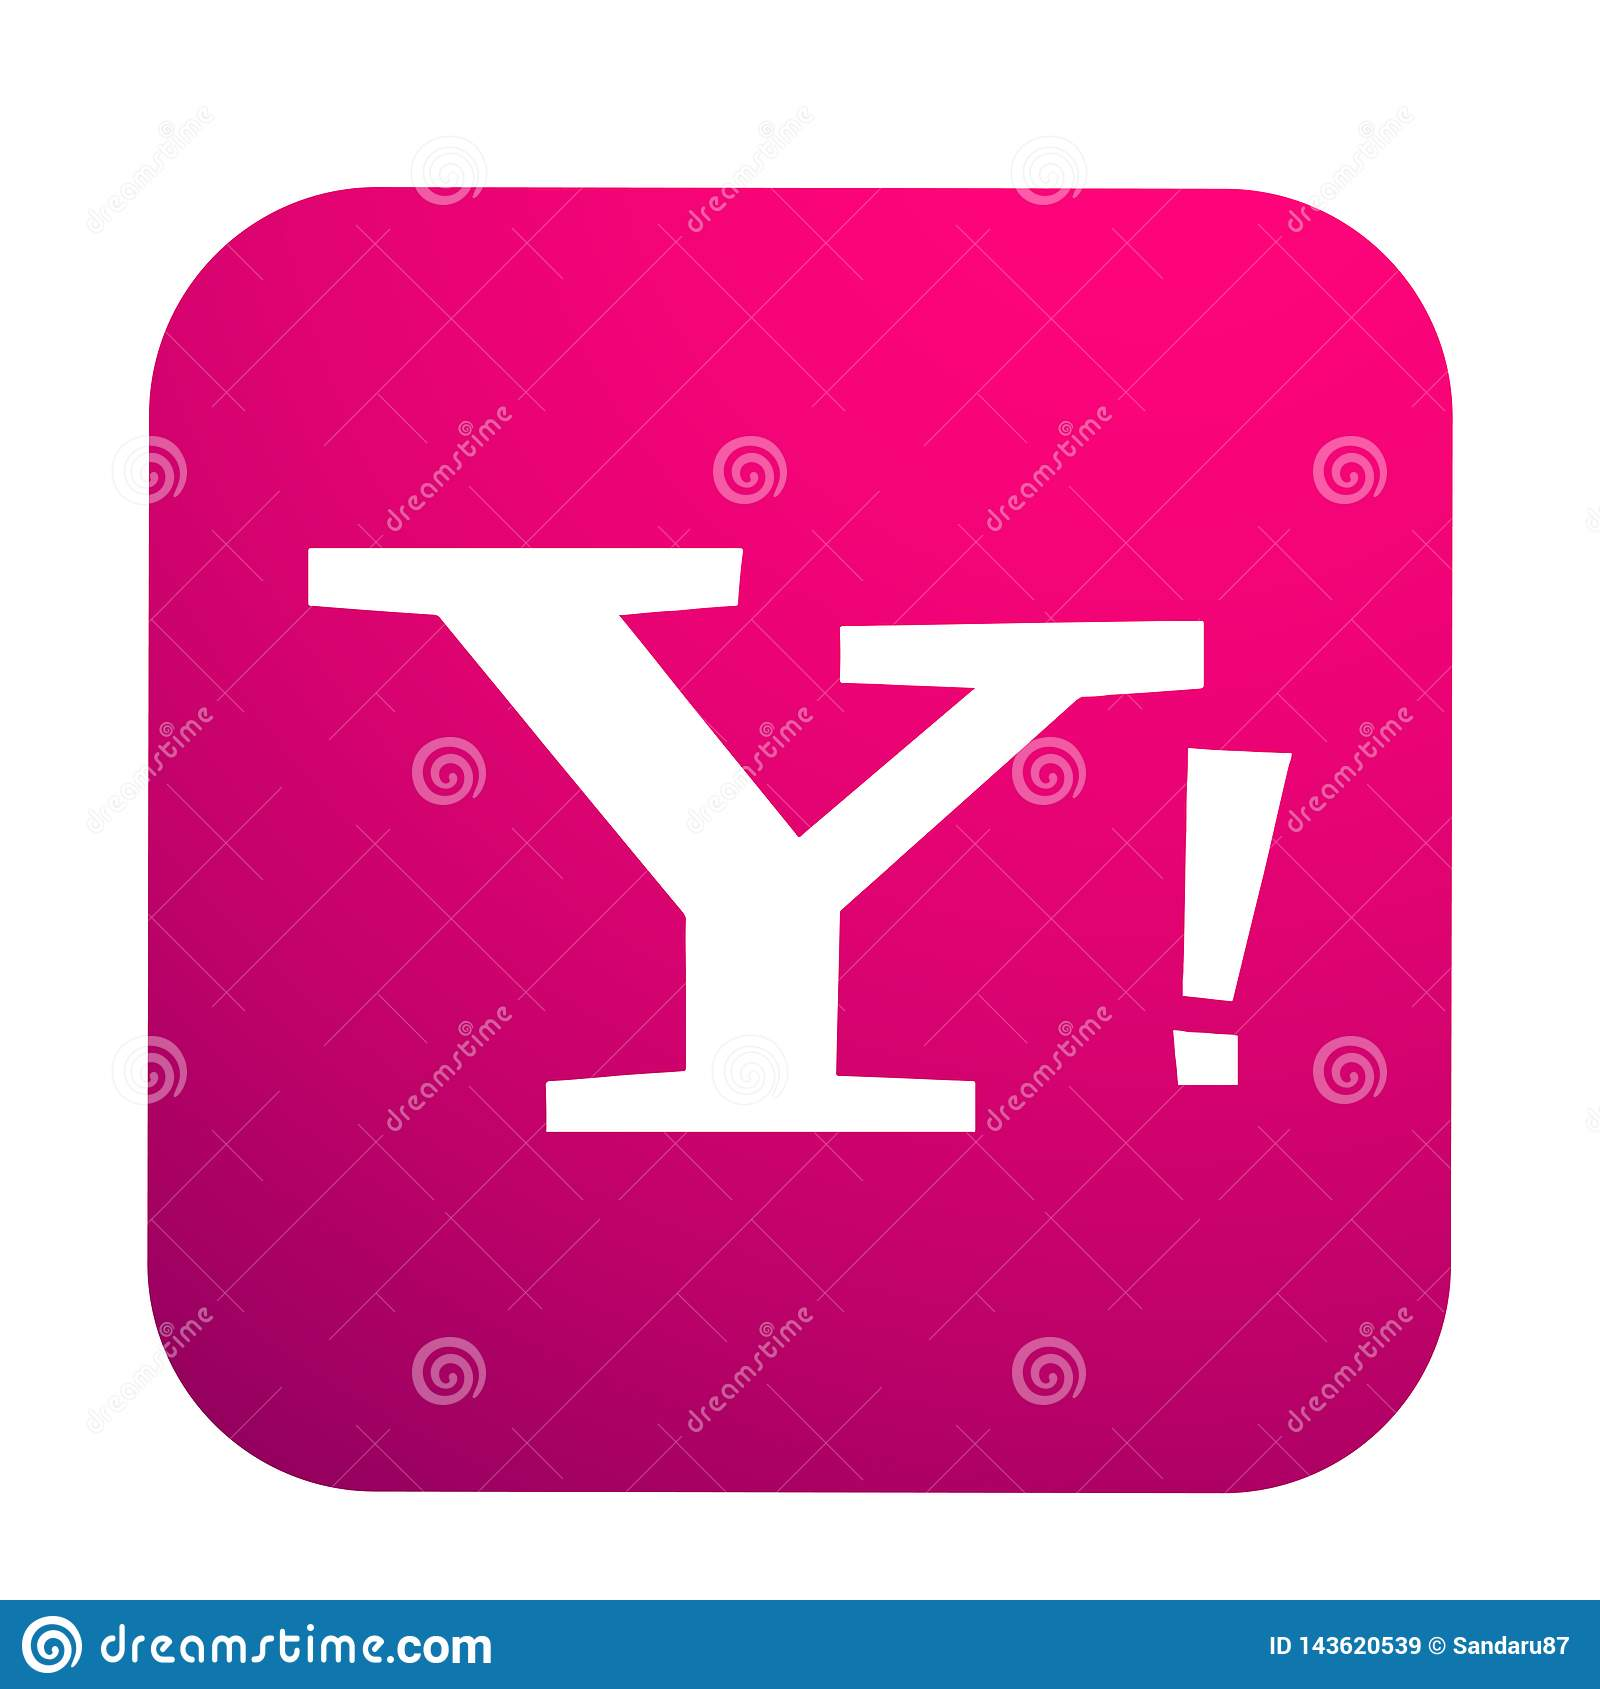 Yahoo Mail Social Media Logo Button Icon In Vector With Modern Gradient Design Illustrations On White Background Editorial Stock Image Illustration Of Chat Display 143620539